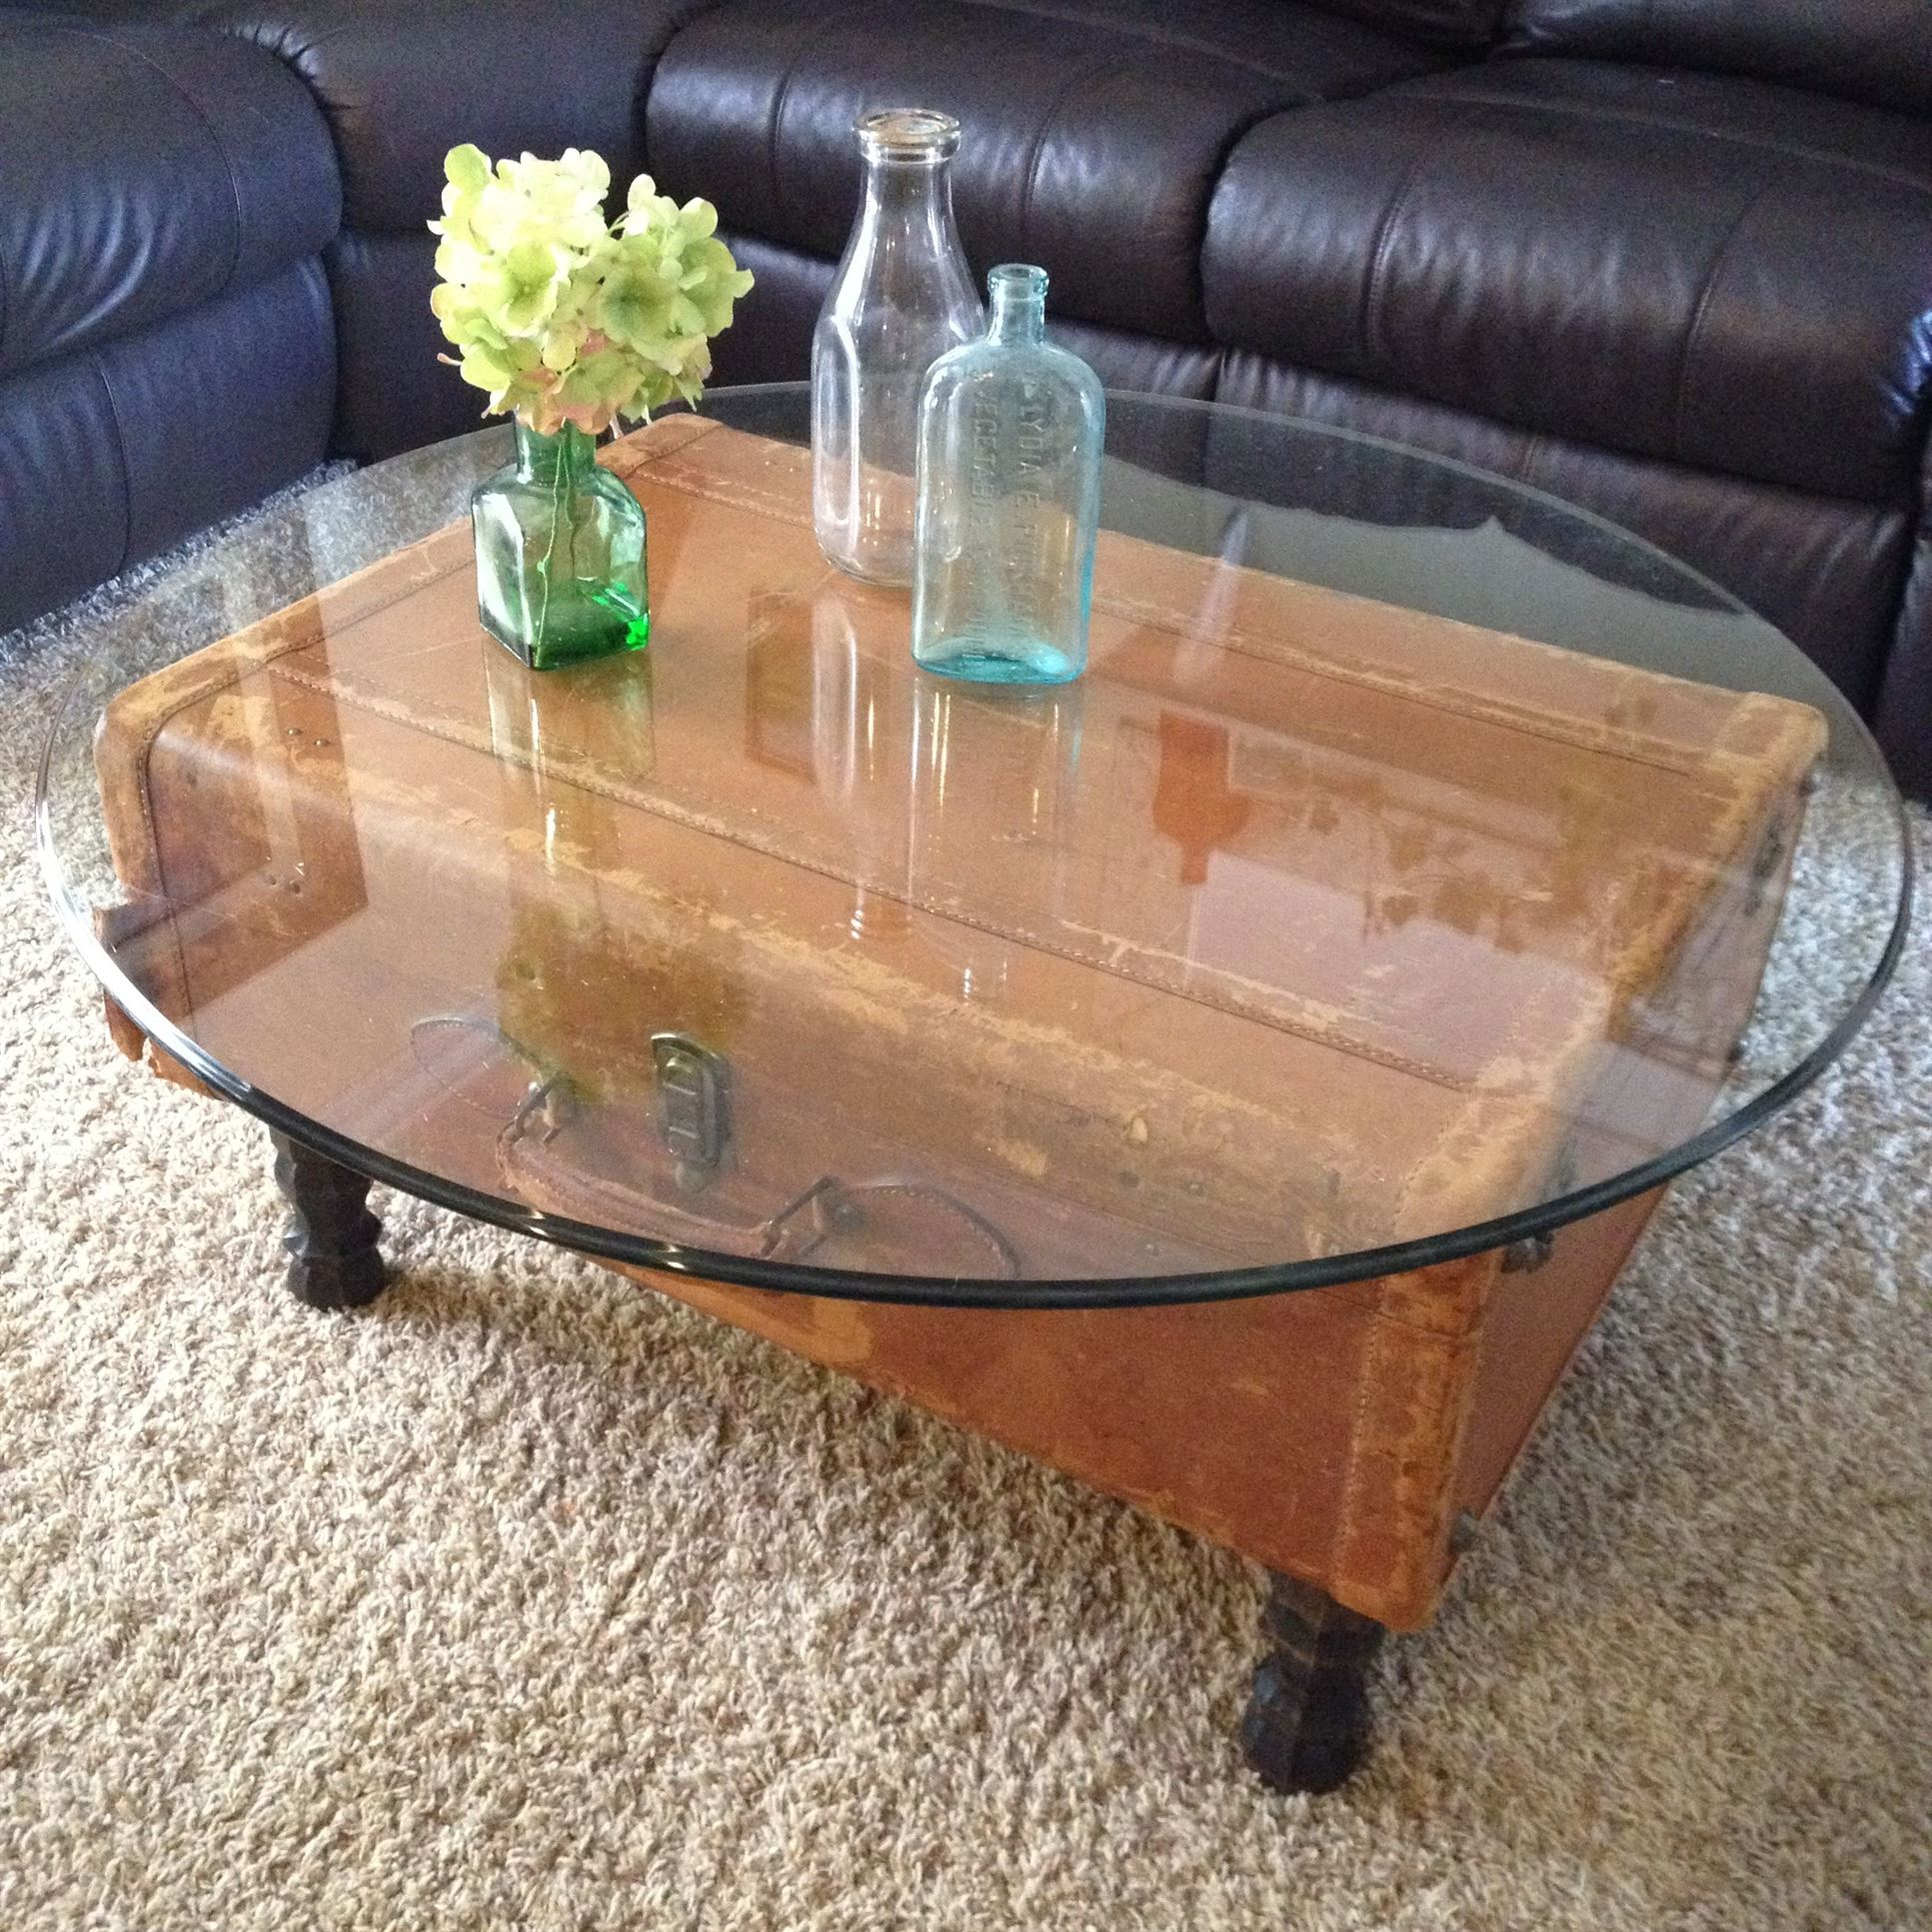 vintage-leather-suitcase-coffee-table-a